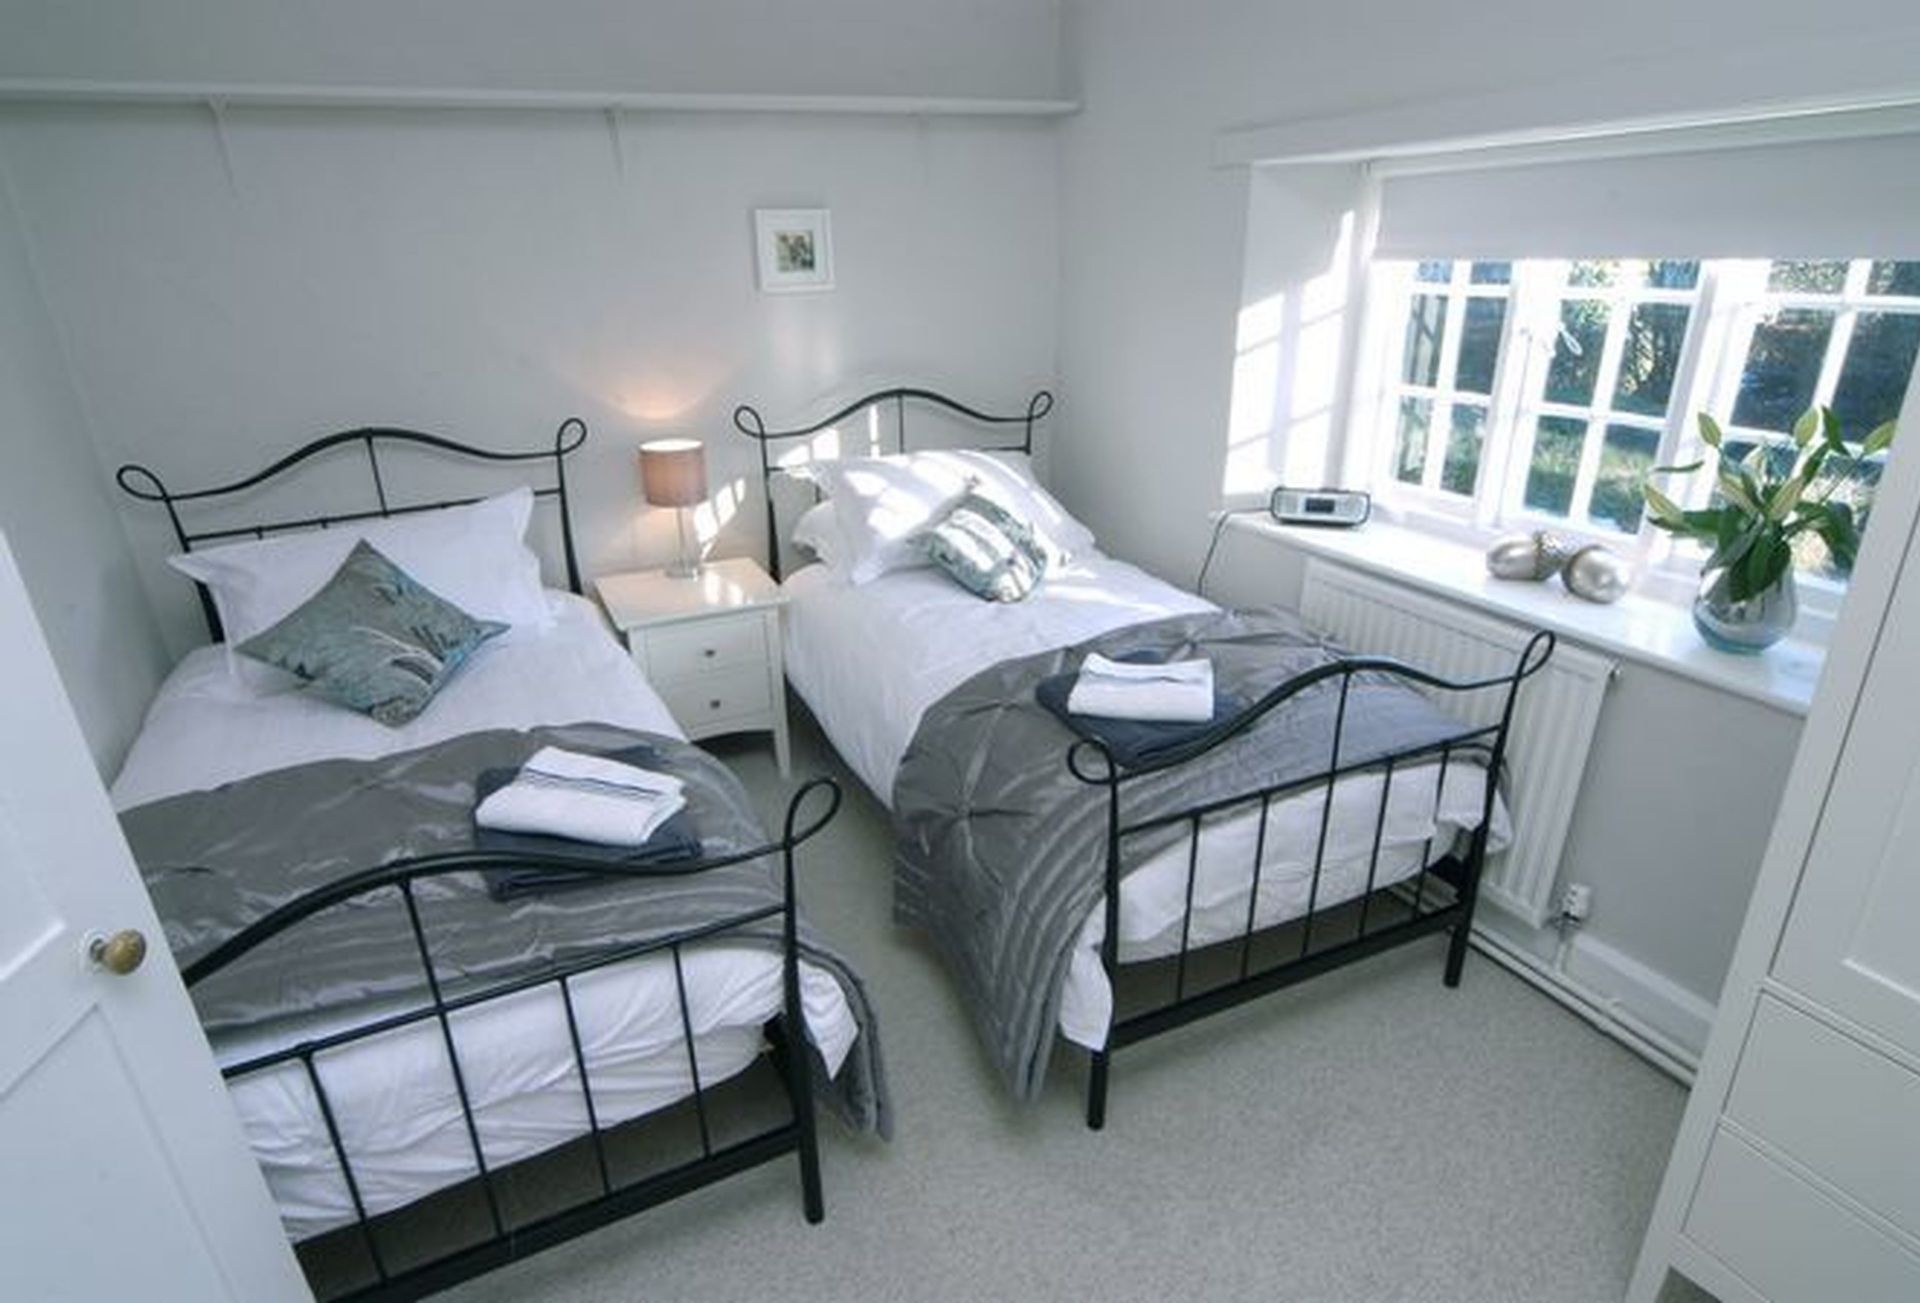 First Floor: a twin-bedded room